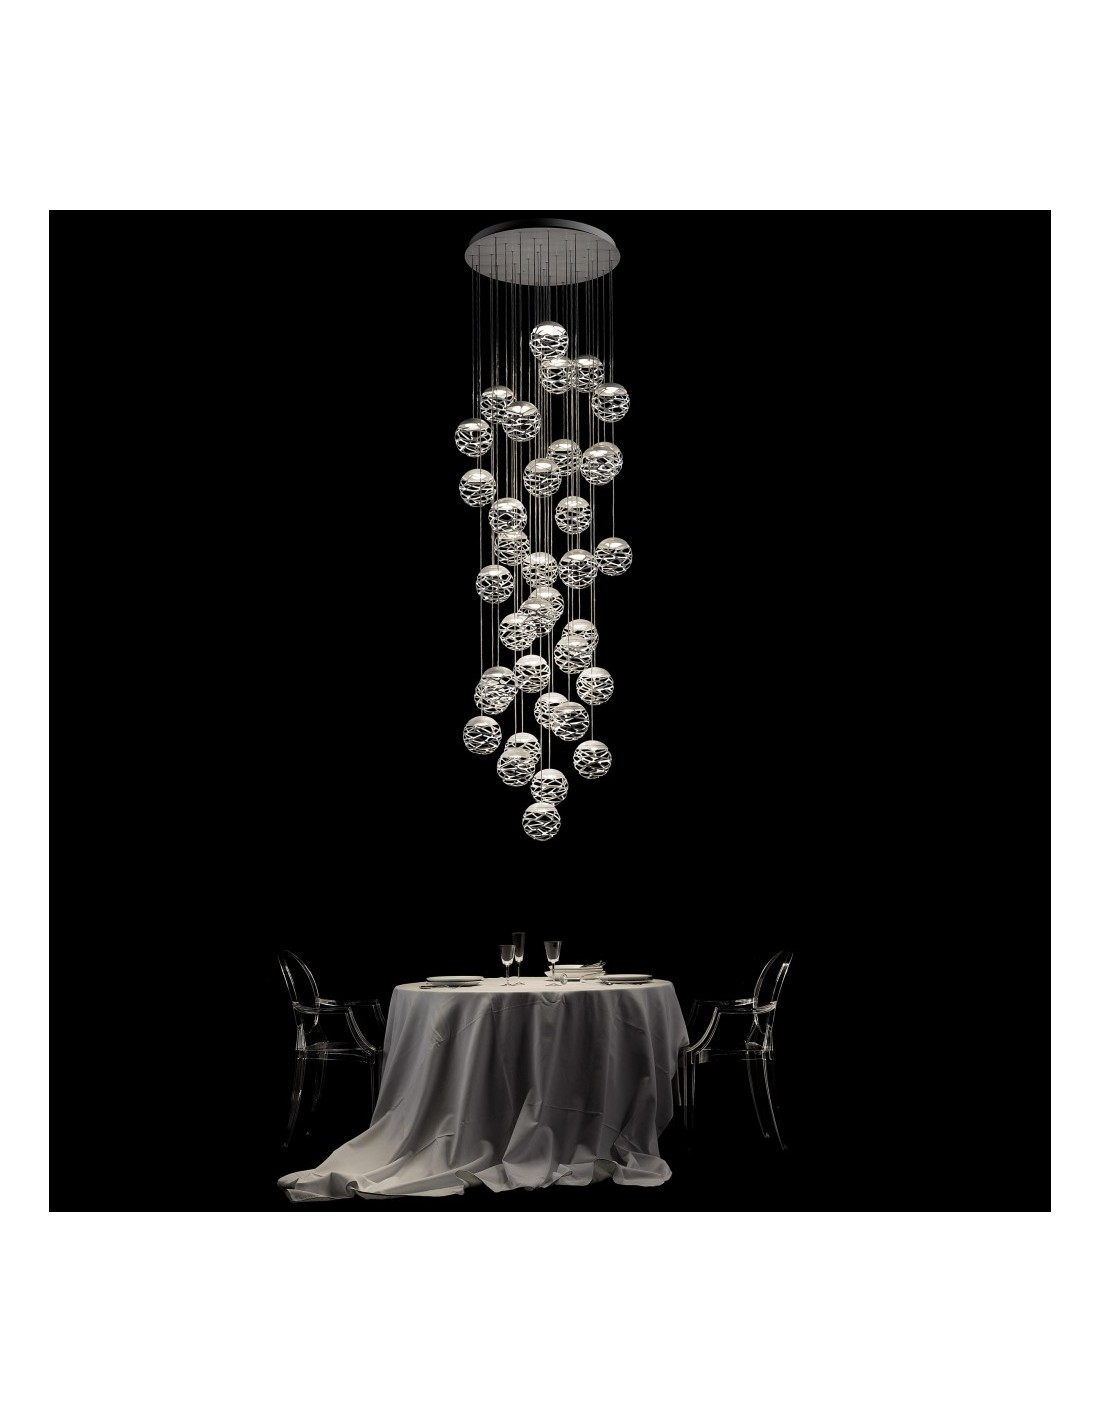 suspension multiple kelly cluster 36 spheres so5. Black Bedroom Furniture Sets. Home Design Ideas